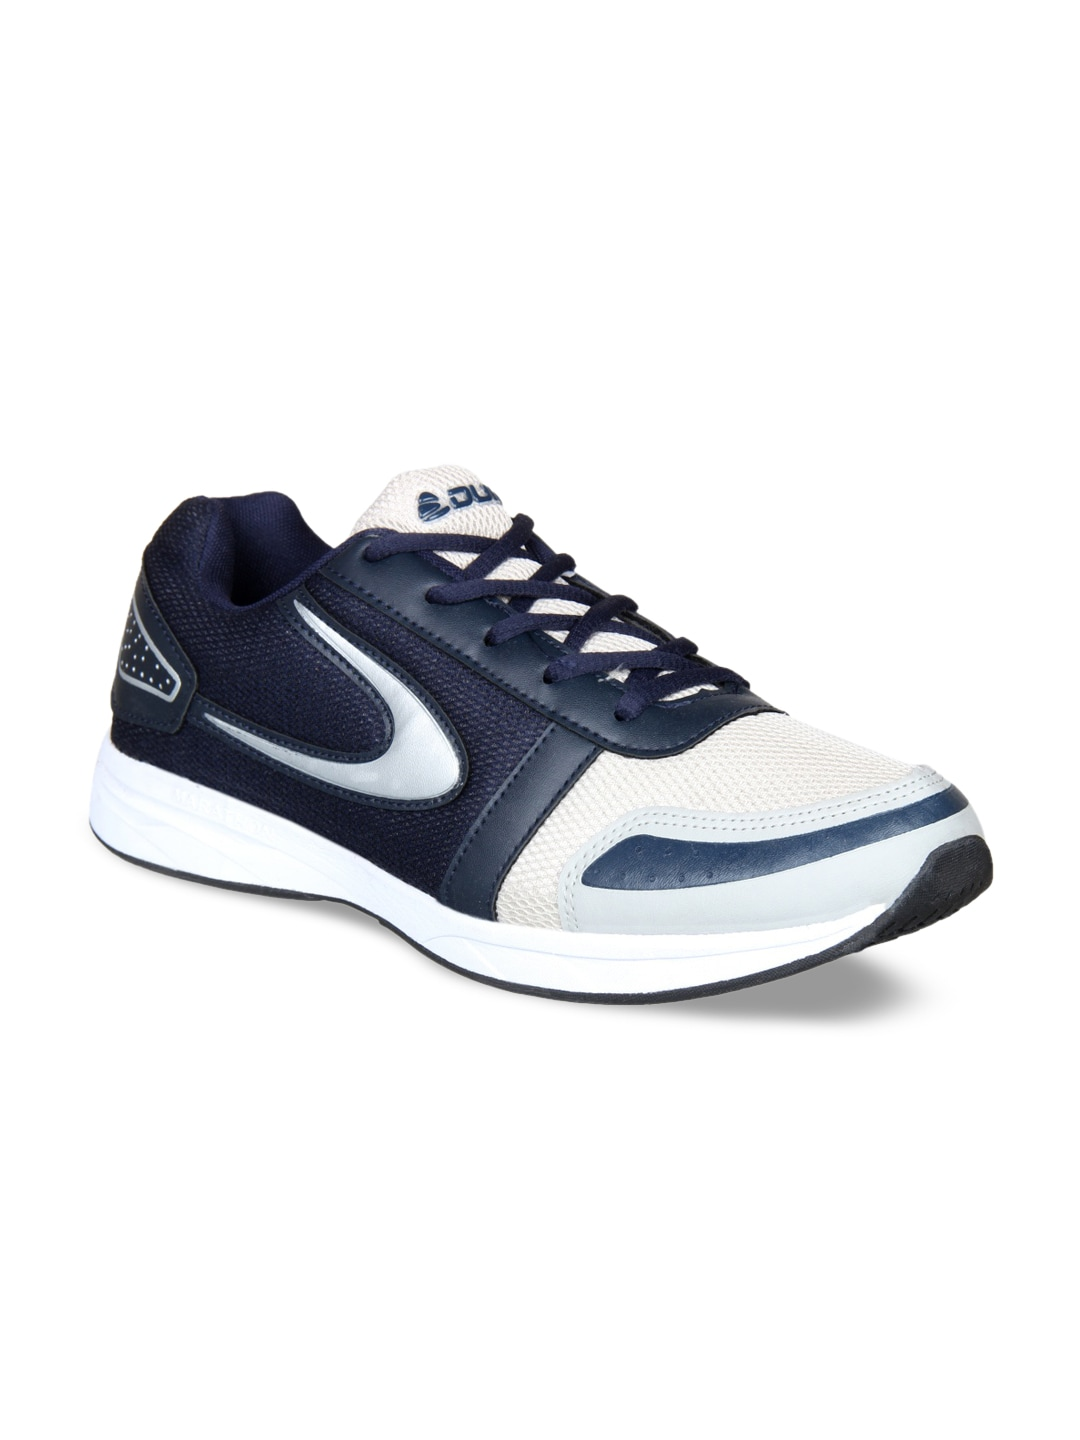 6f64a88a1999e4 Running Sports Shoes - Buy Running Sports Shoes online in India